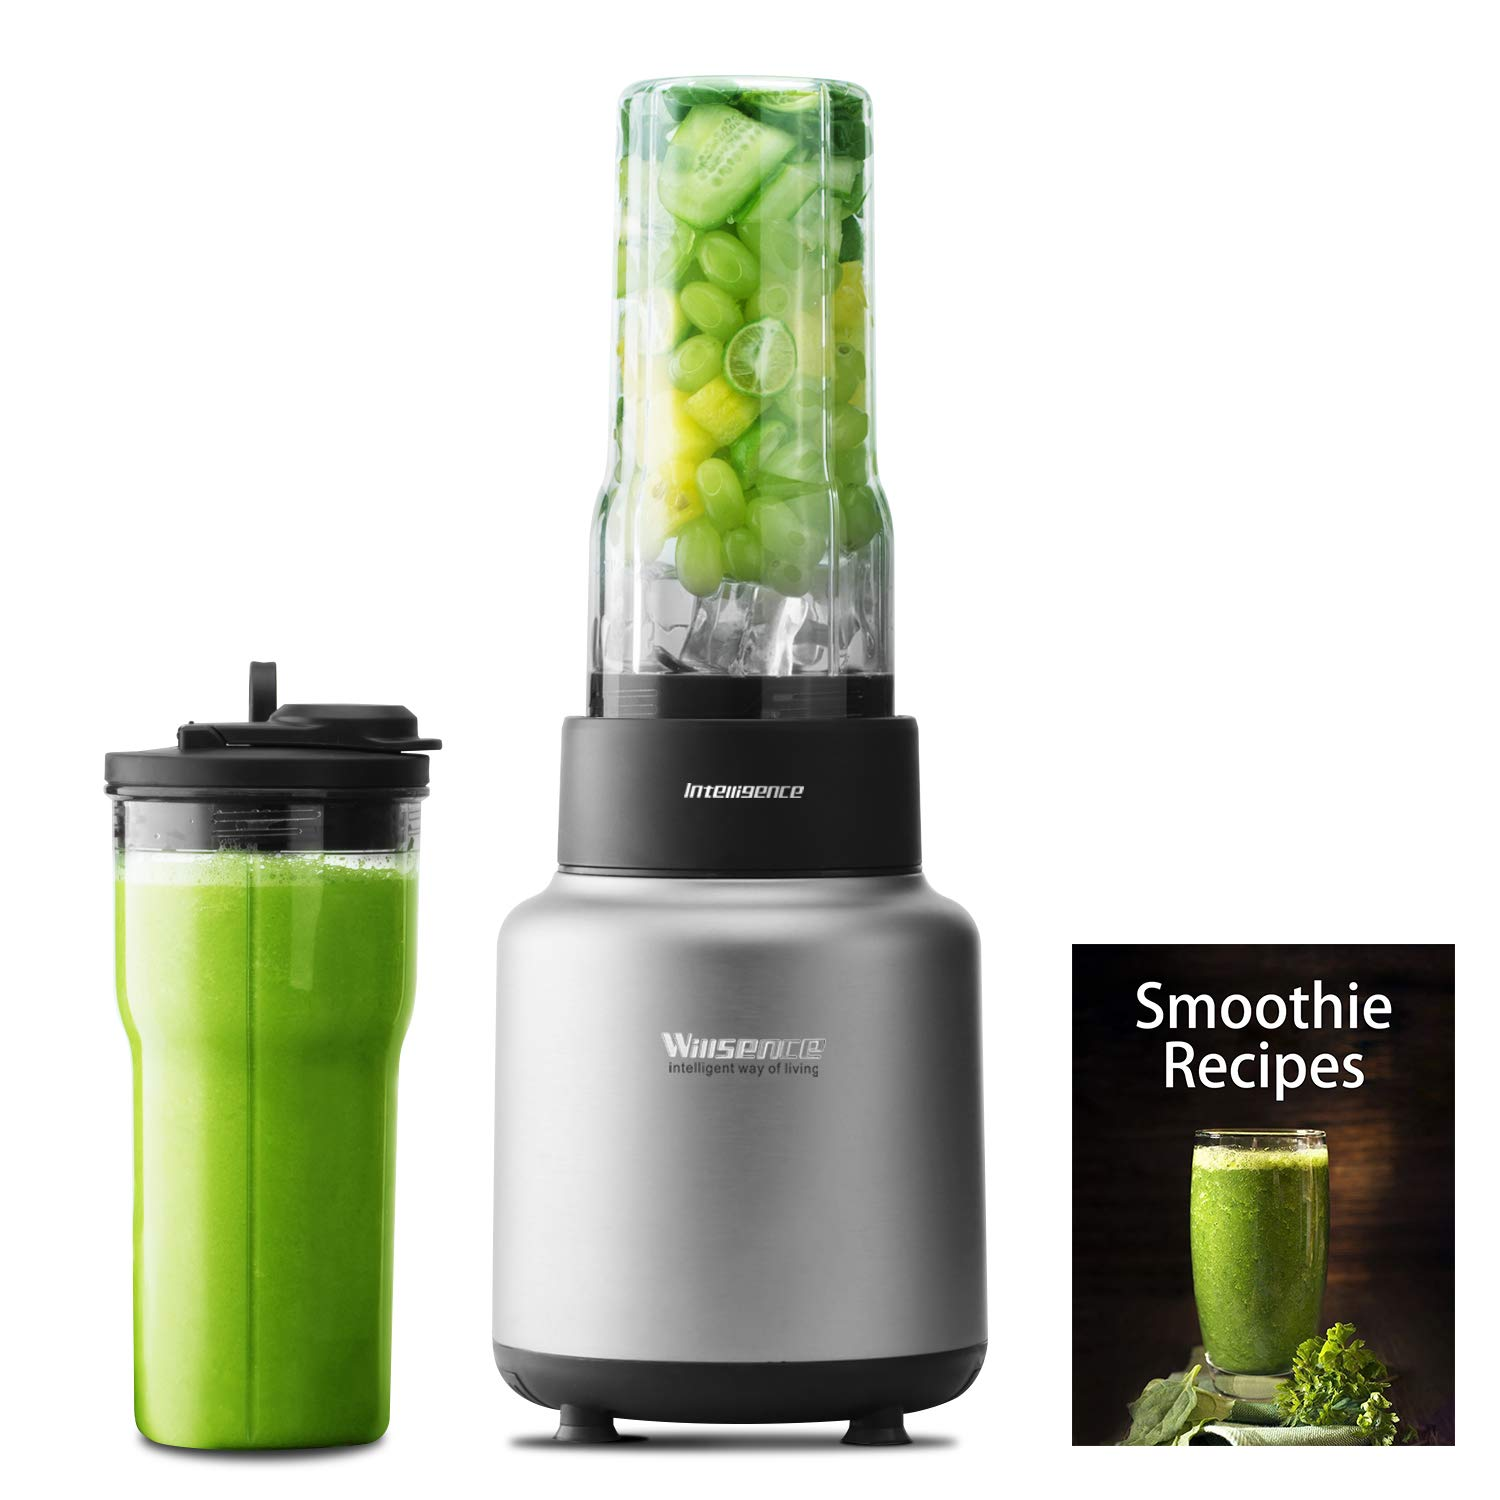 Blender Smoothie Blender Willsence Personal blender for Shakes and Smoothies, NUTRI-IQ Intelligent Identification of Food Hardness 900W 1500W, 2 x 24 oz to-go Tritan Cups BPA Free with Spout Lids